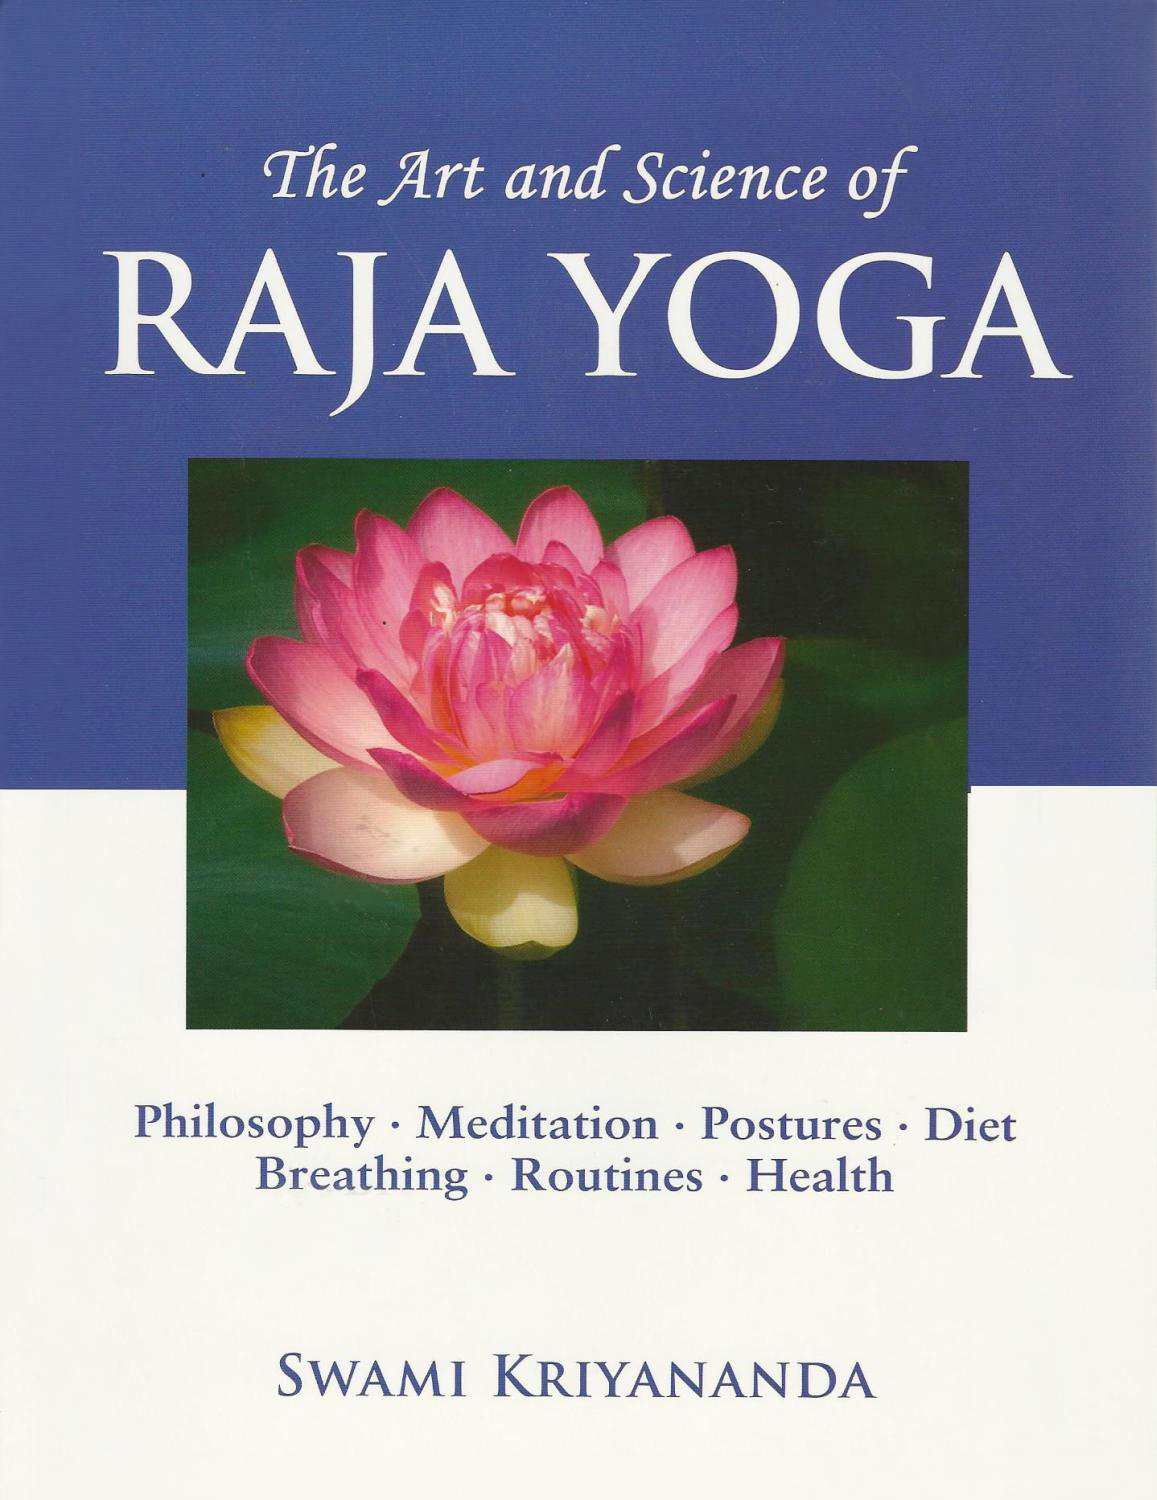 Raja Yoga cover large.jpg